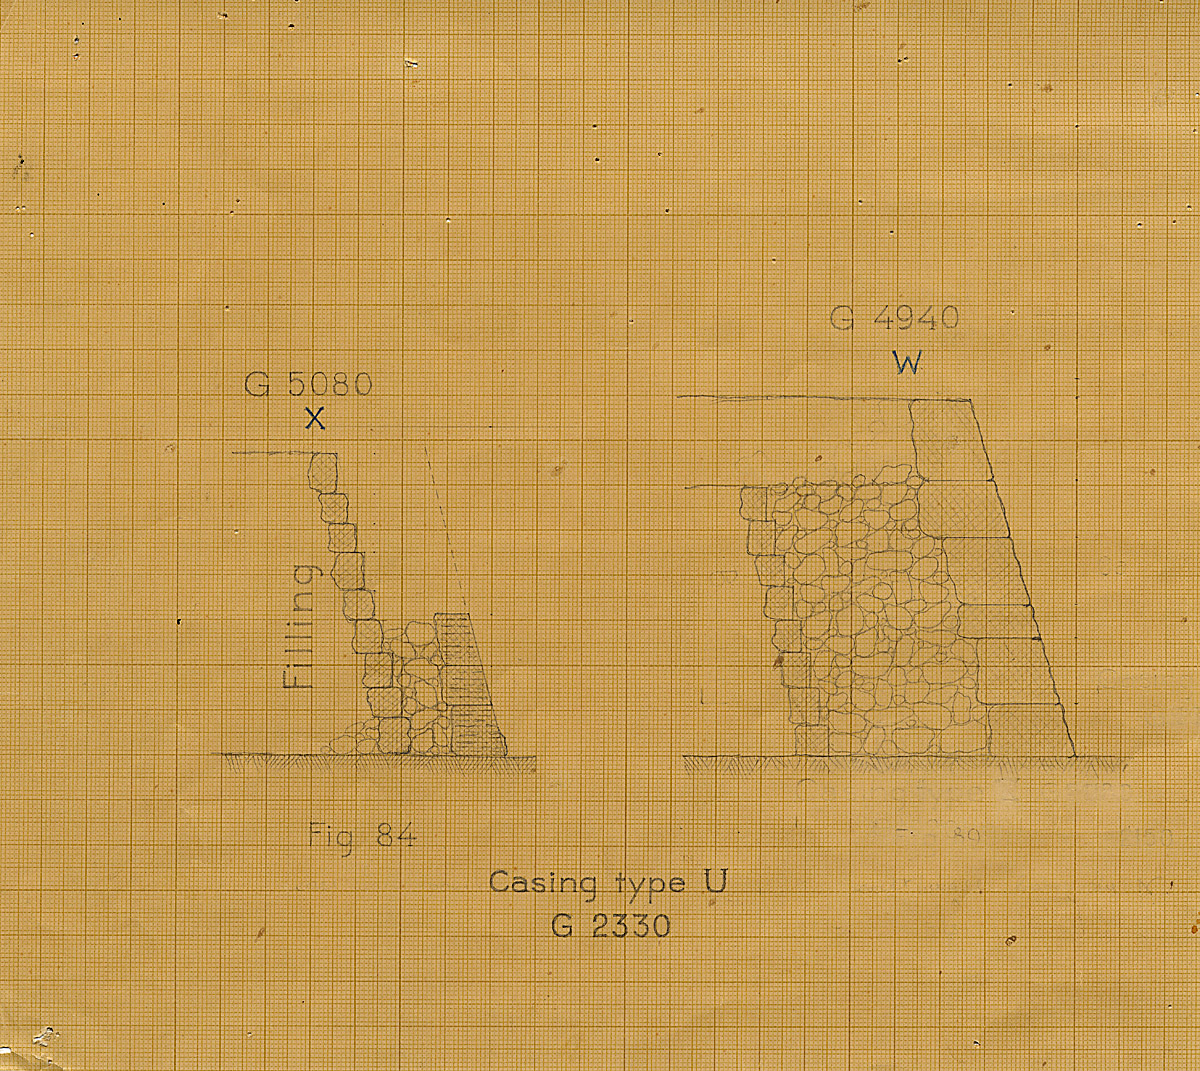 Maps and plans: G 2200 = G 5080, Section of casing type X & G 4940, Section of casing type W